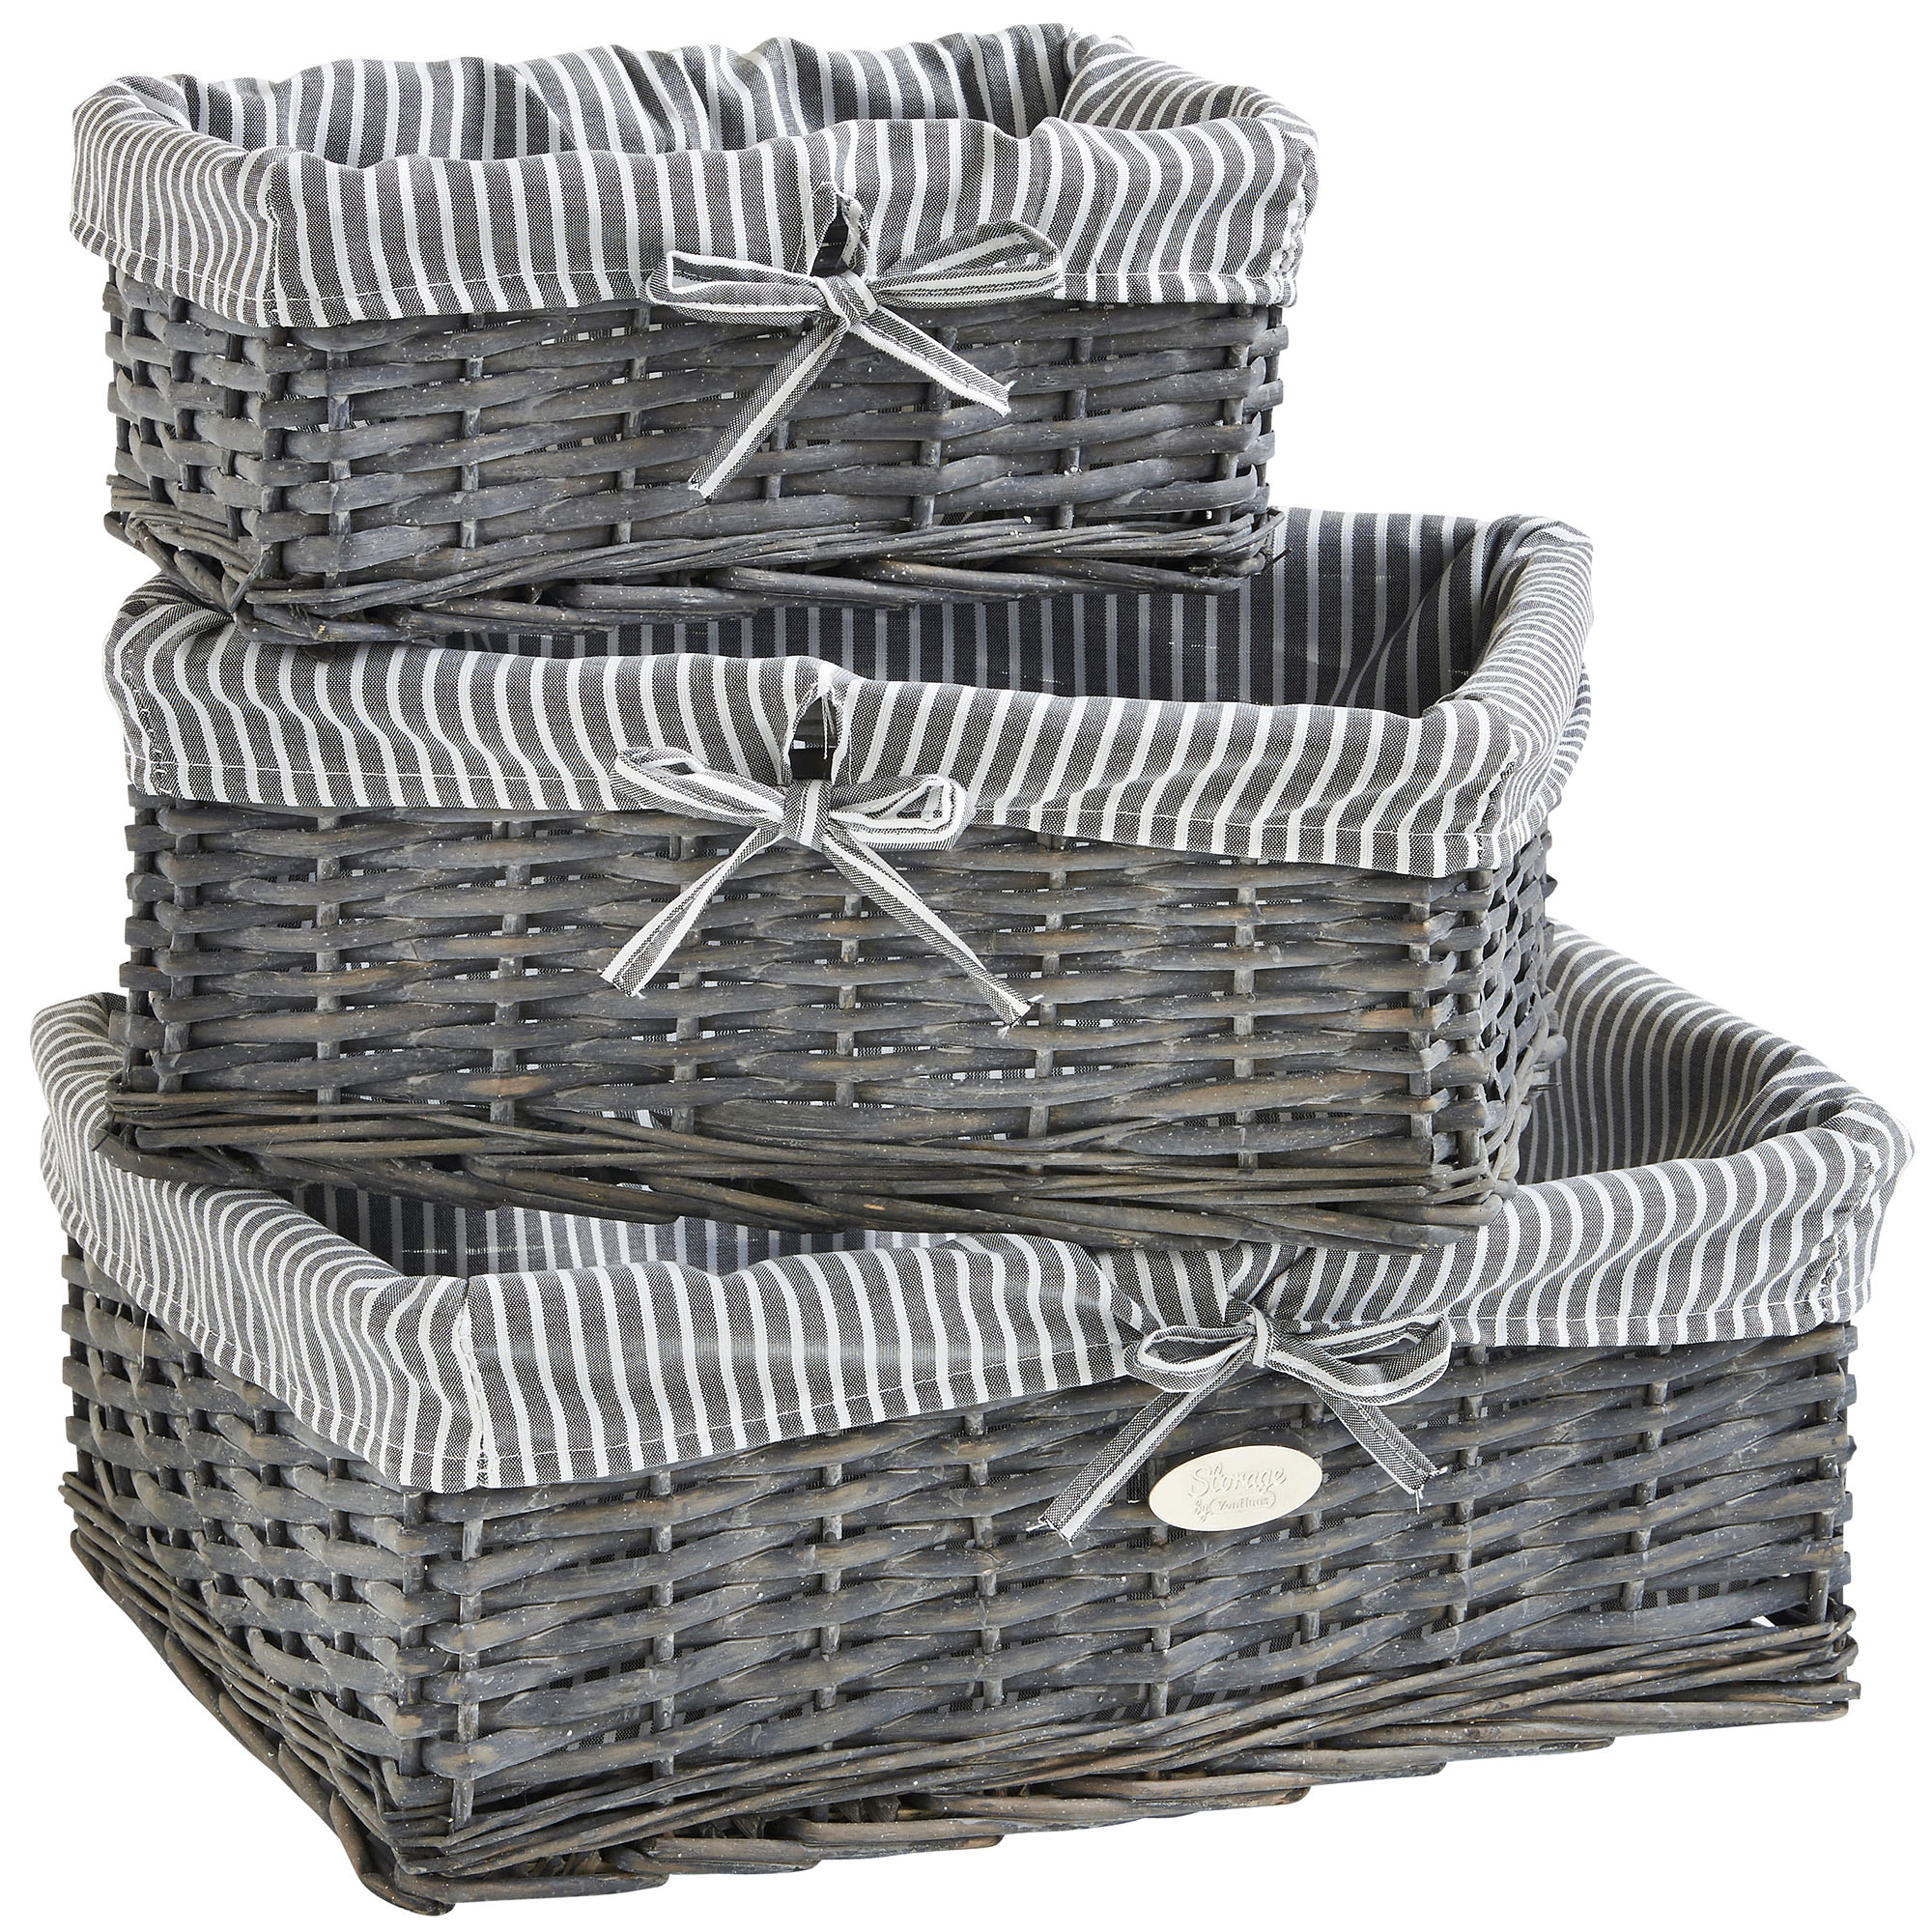 Grey Wicker Basket Uk : Vonhaus set of grey wicker storage baskets with